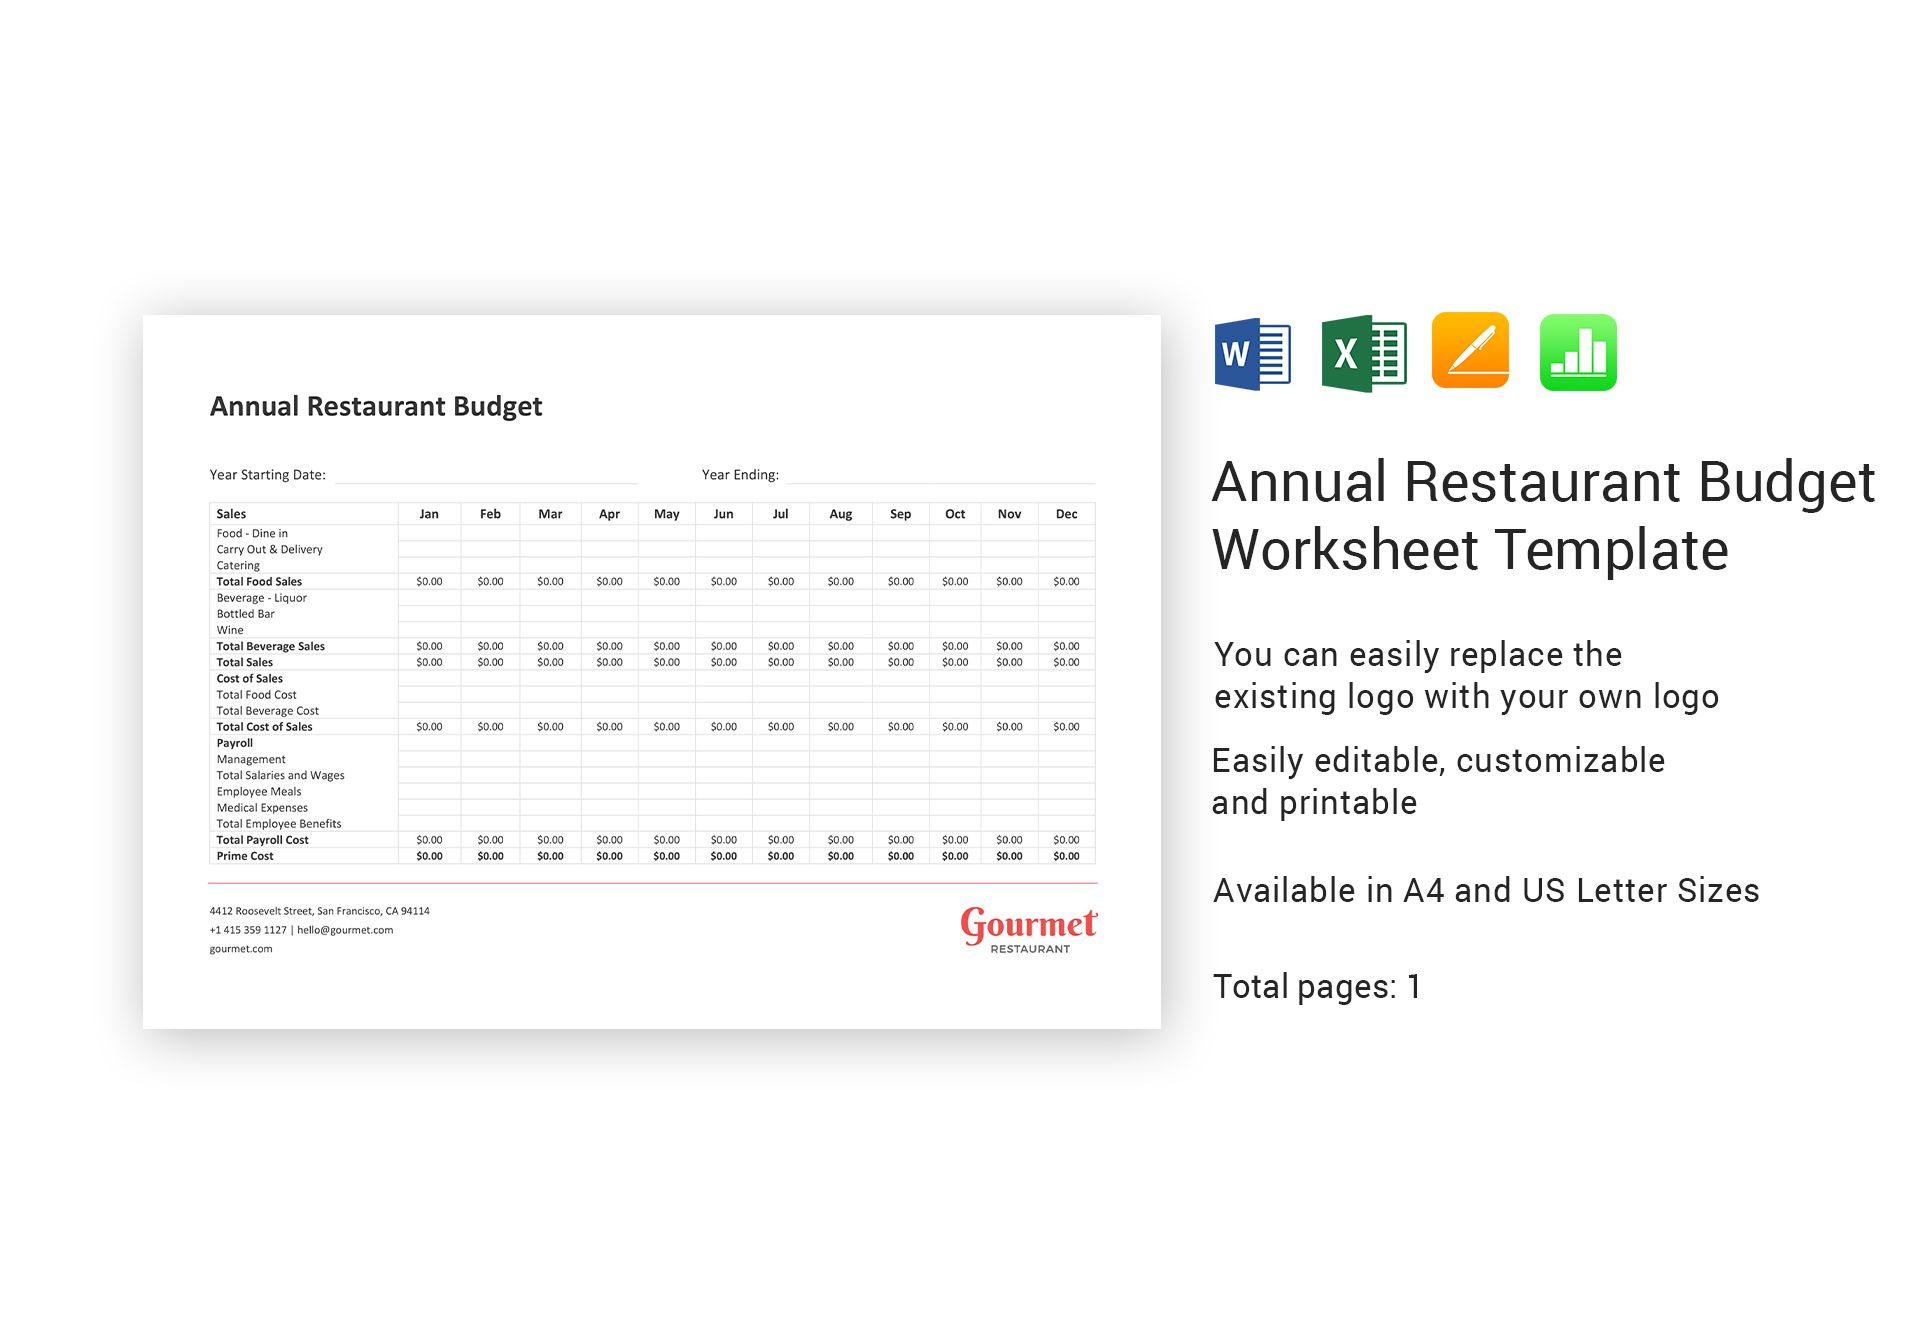 Annual Restaurant Budget Worksheet Template In Word Excel